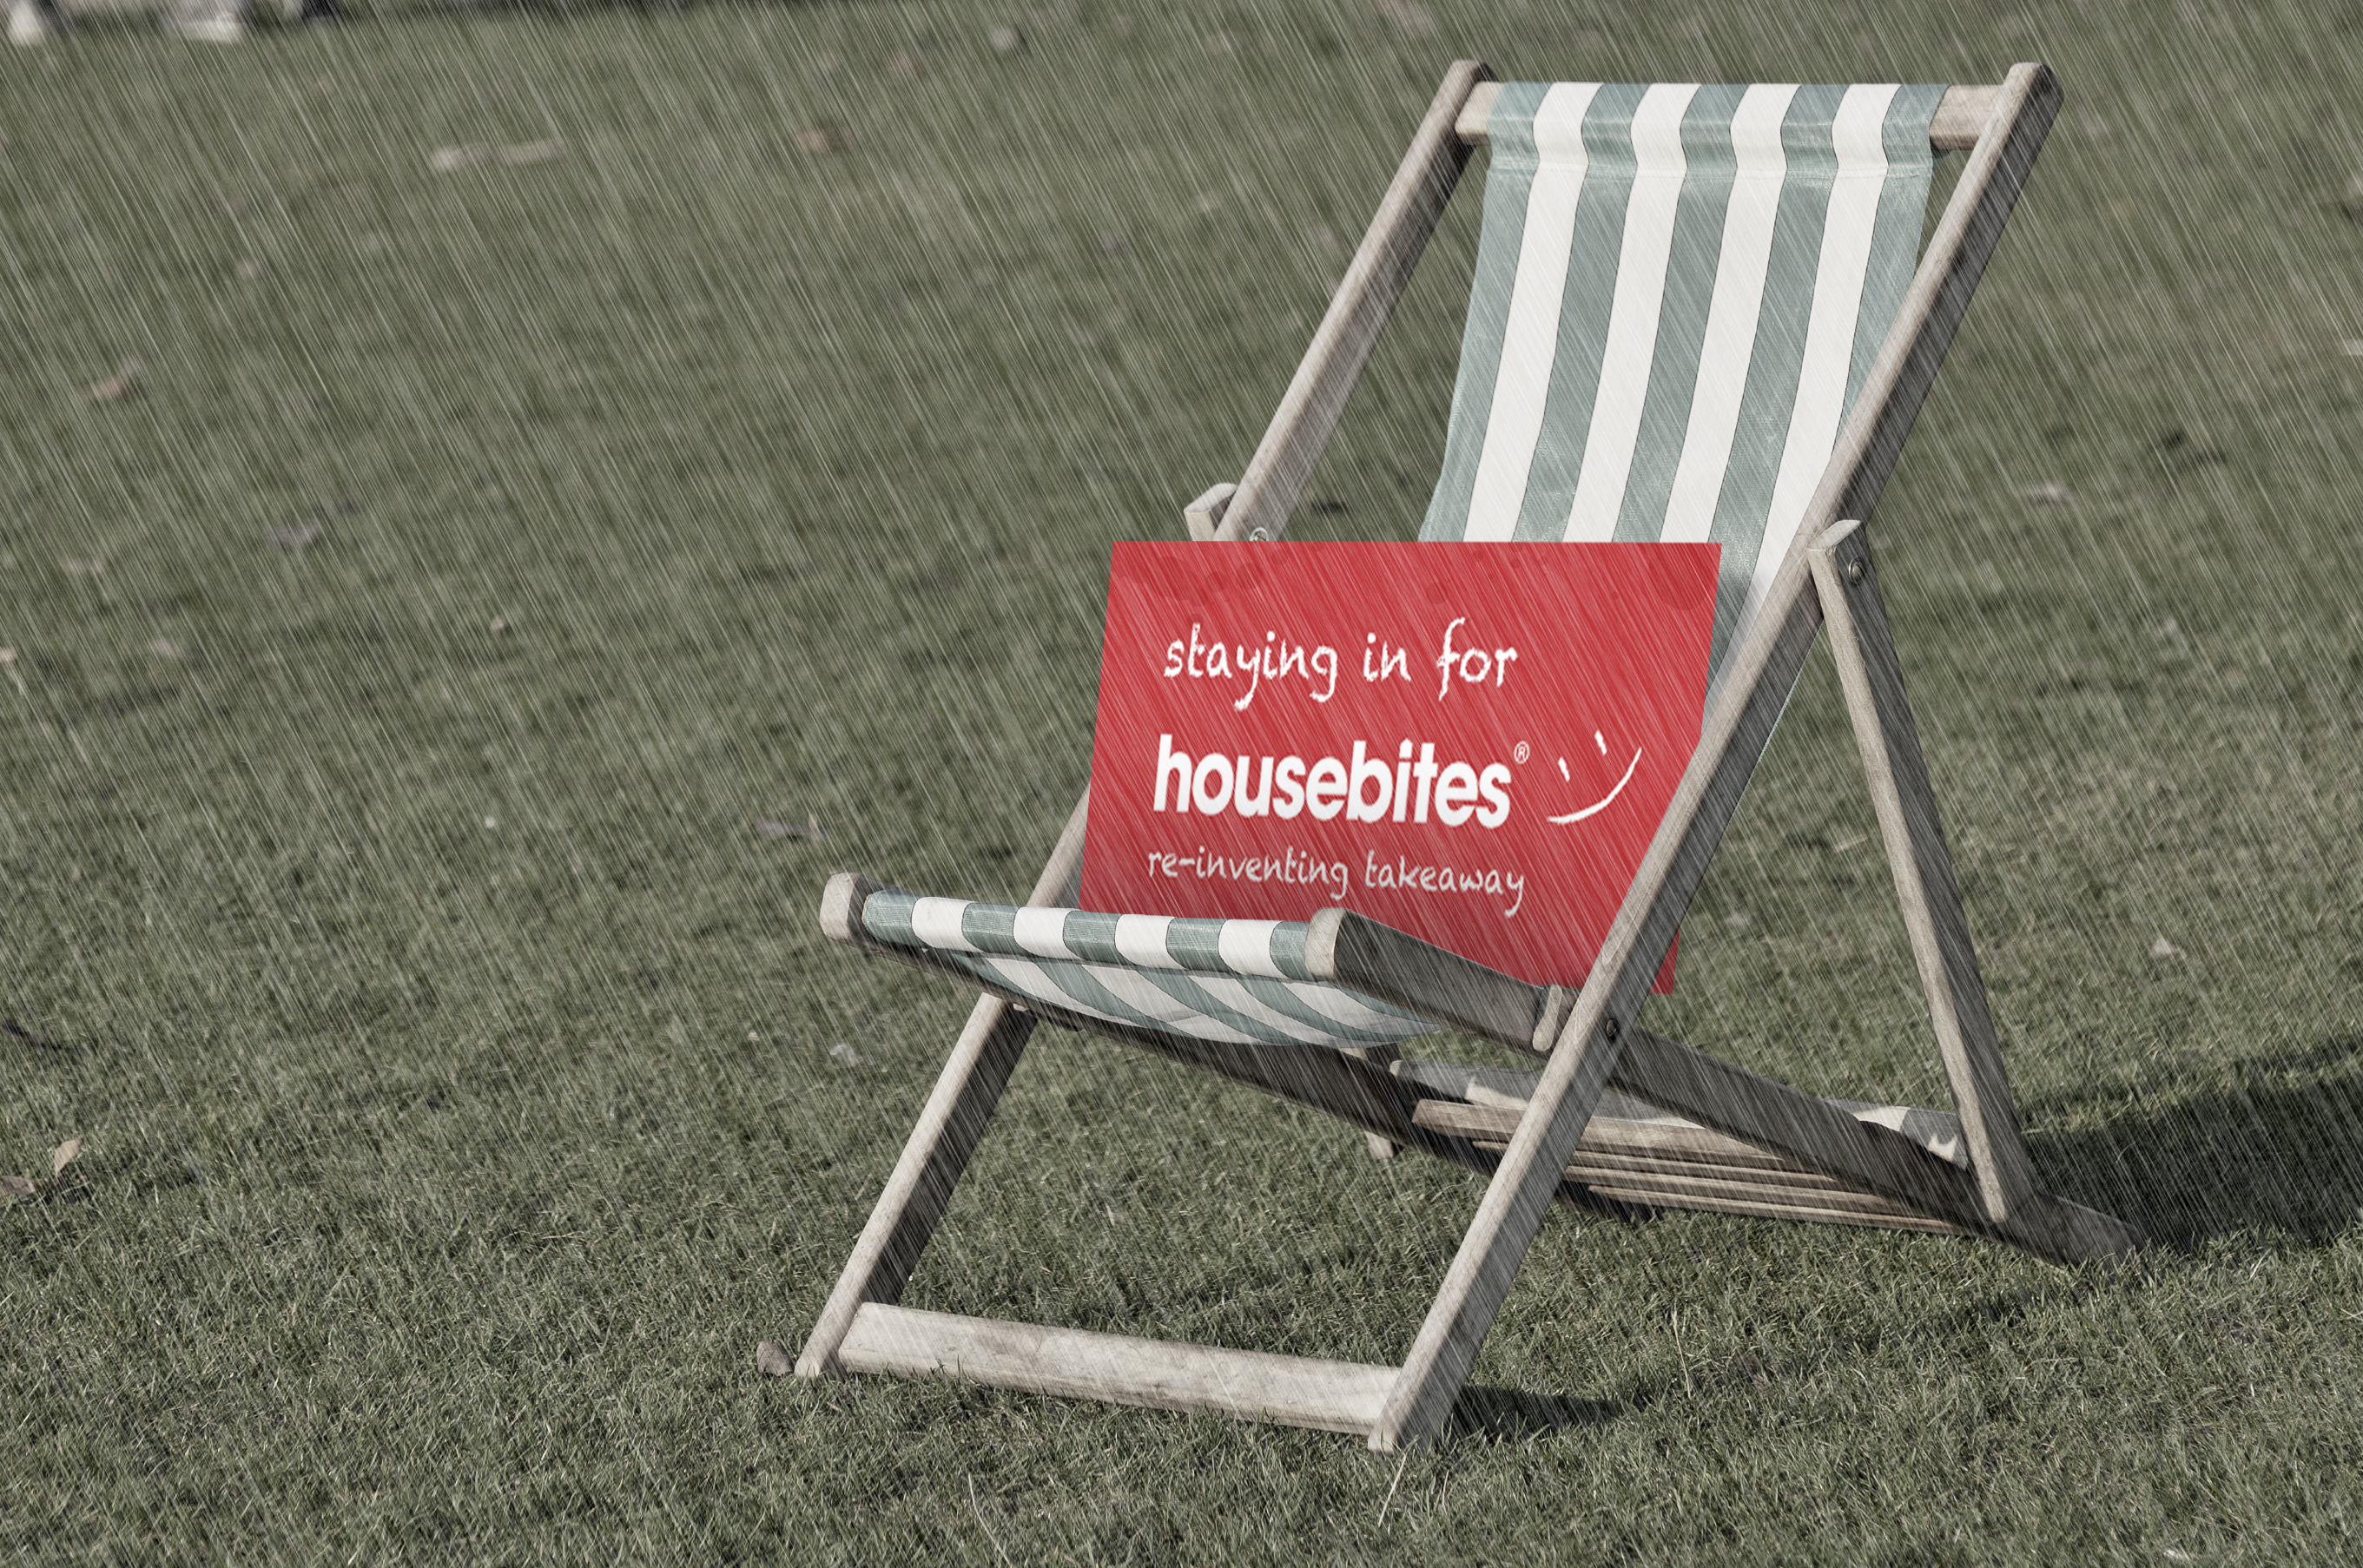 Demand for Housebites in Brighton has been linked to the recent April showers driving people indoors